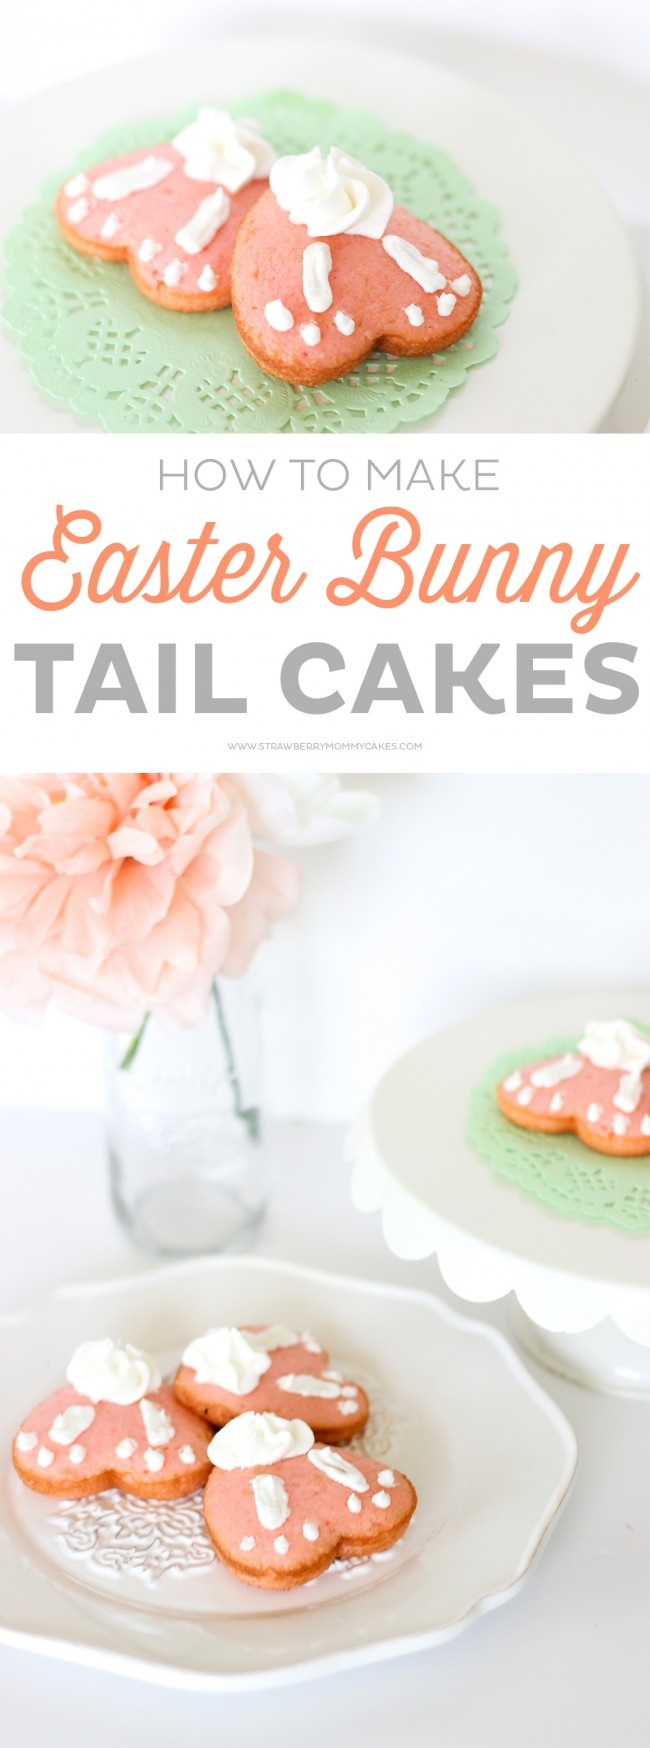 How to Make Easy Easter Bunny Tail Cakes